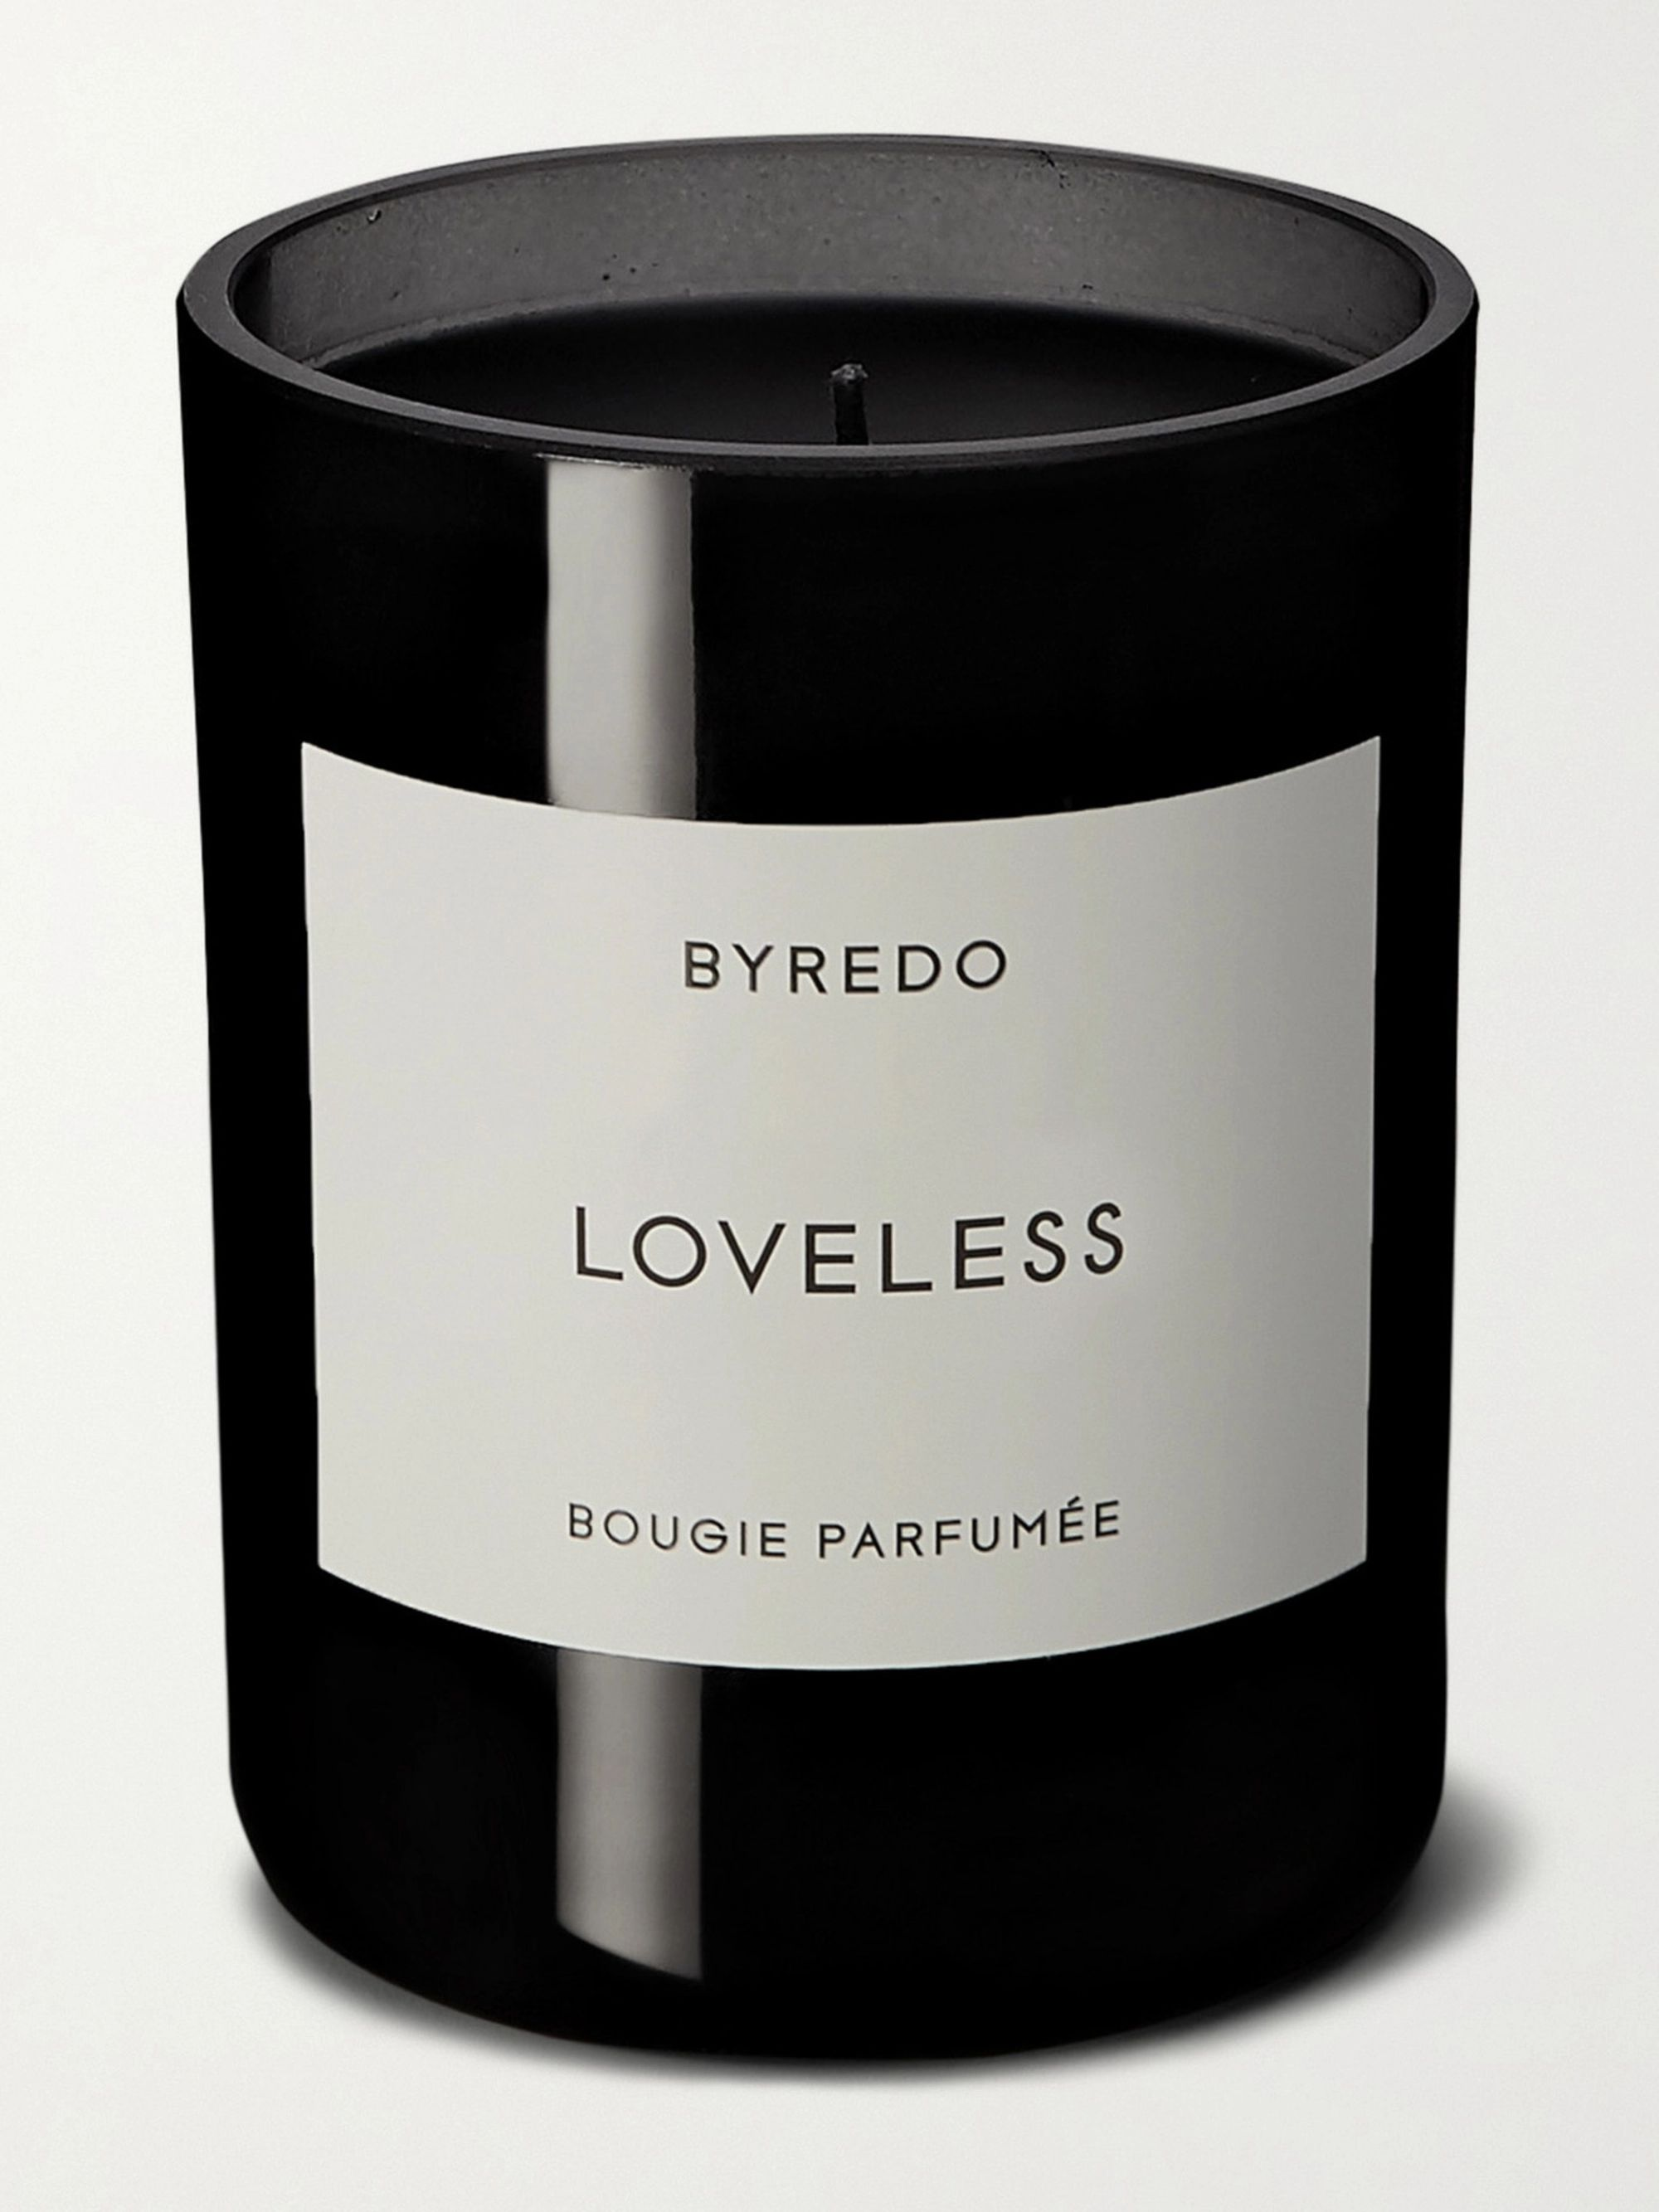 BYREDO Loveless Scented Candle, 240g